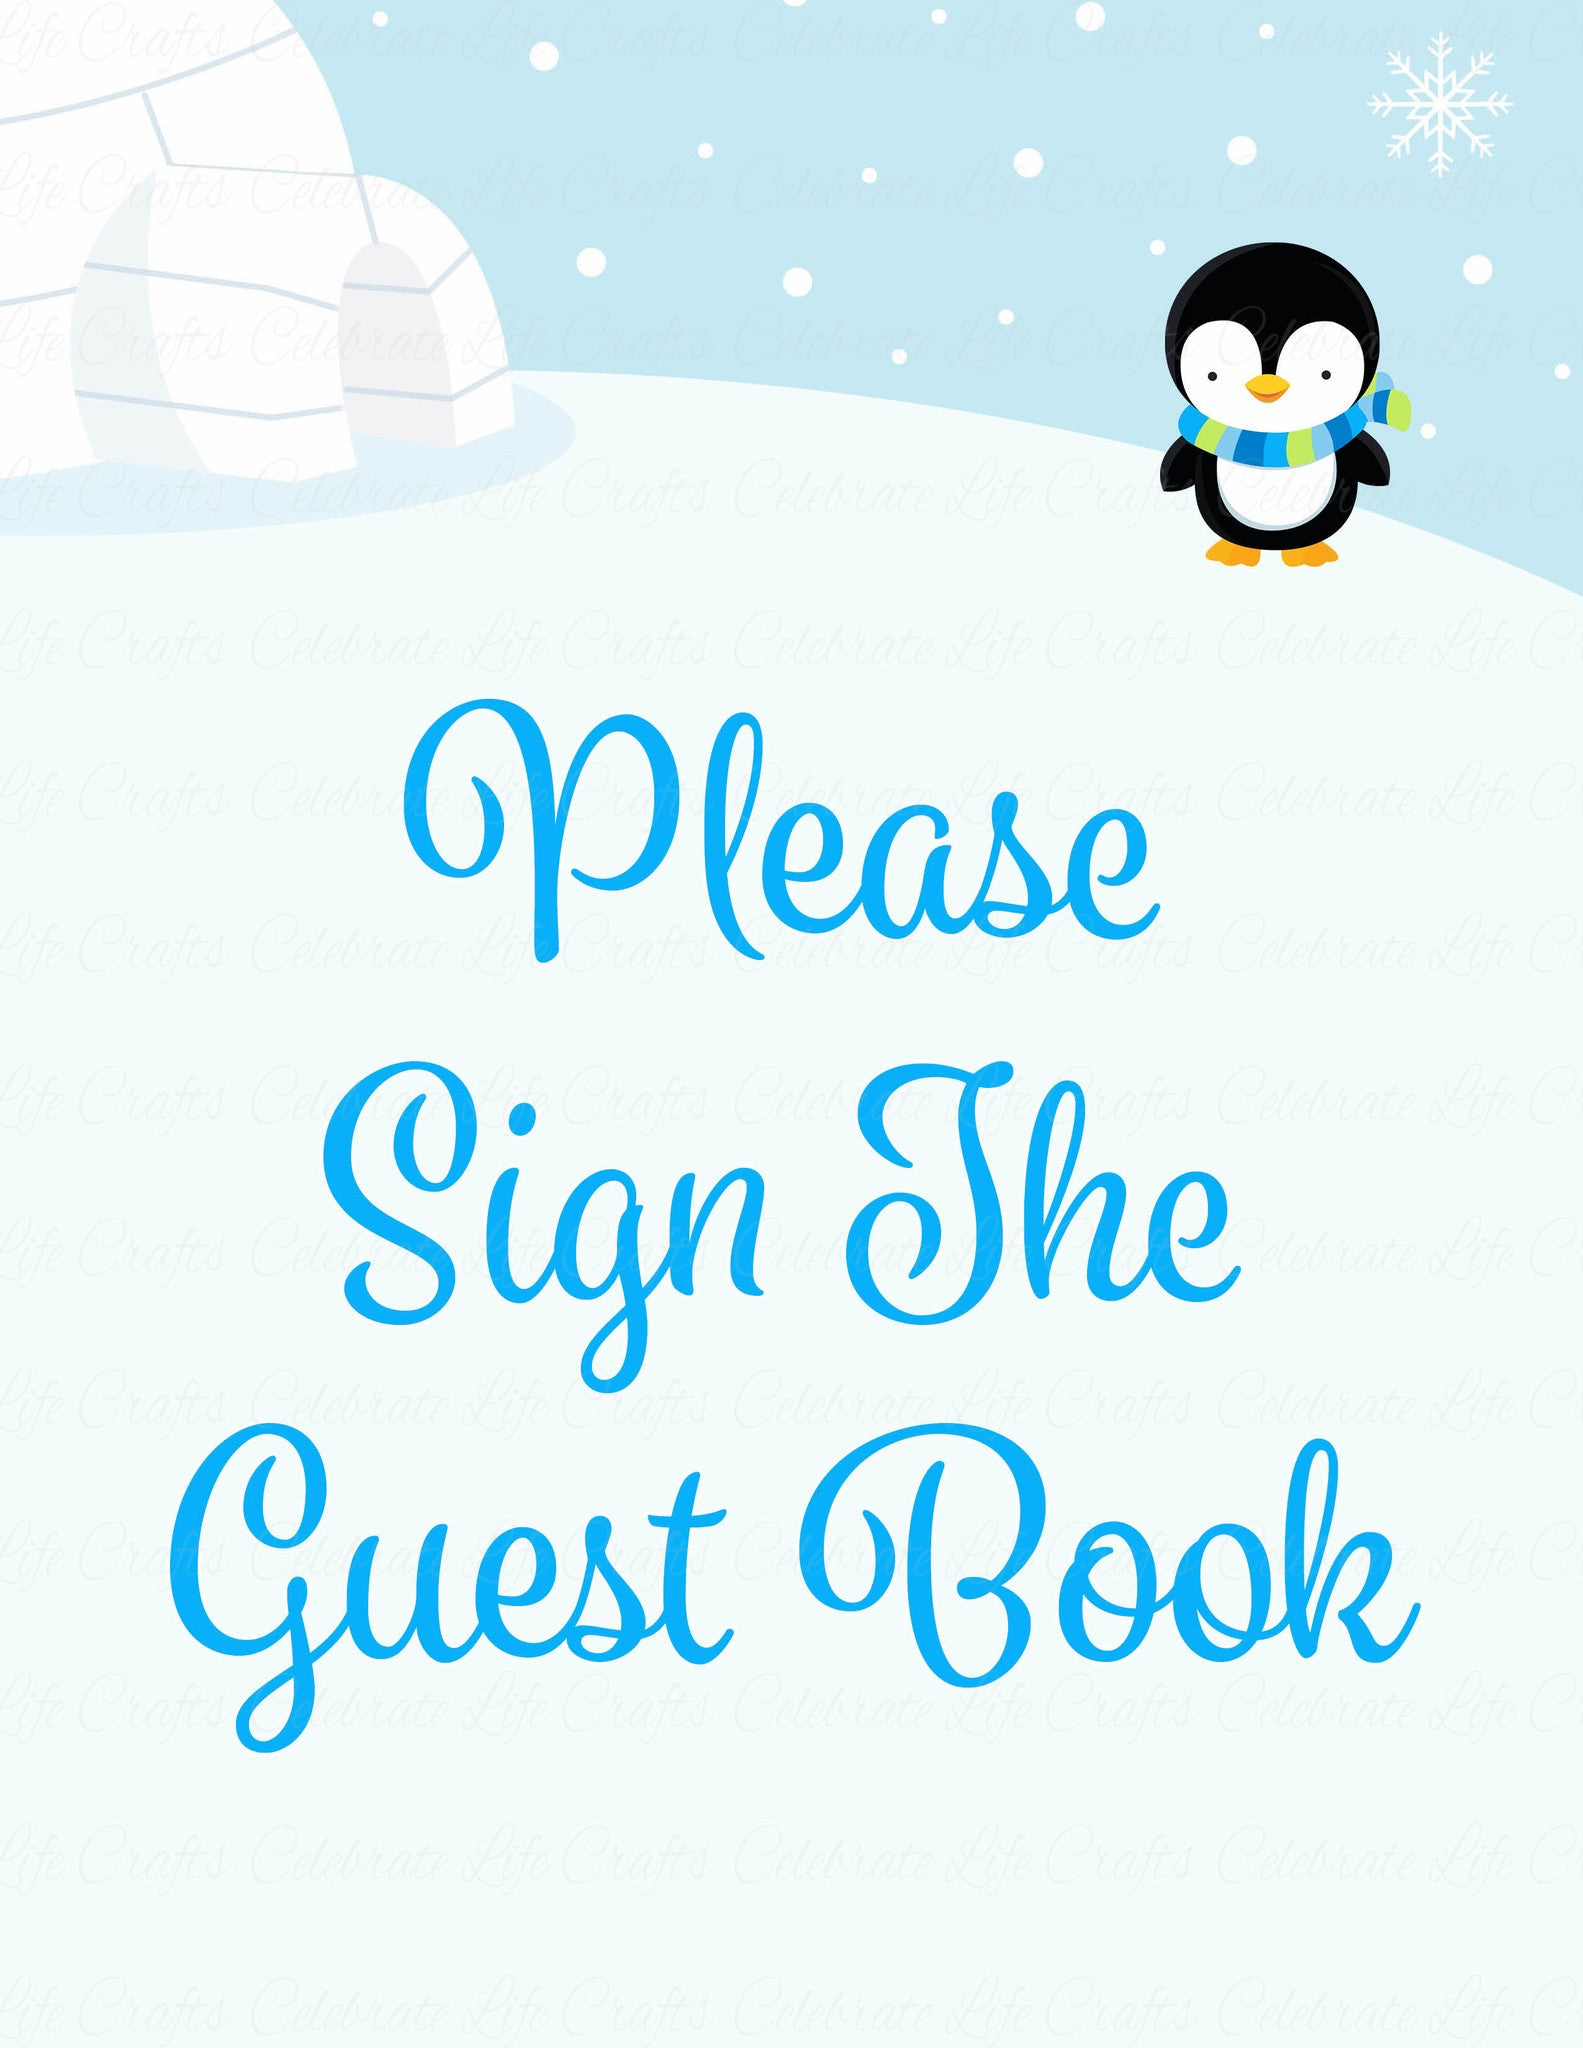 Baby Shower Guest List Set   Printable Download   Blue Penguin Winter Baby  Shower Decorations   B22006.